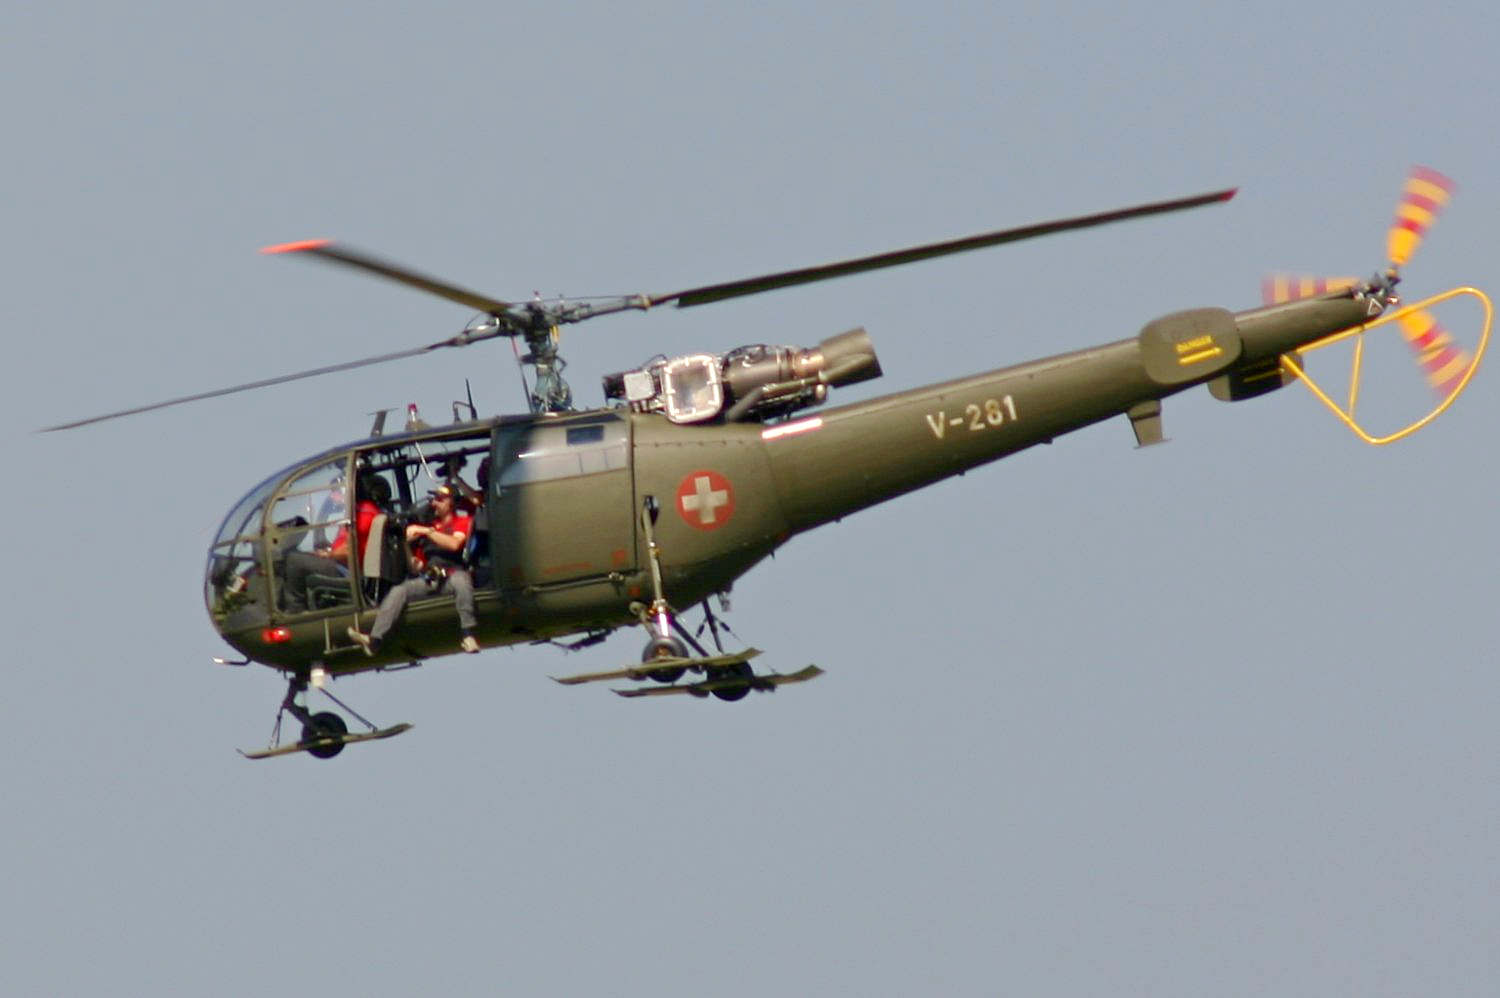 target remote control helicopter with List Of Aircraft Of The Swiss Air Force on Spy Monitor Camera also Drifting Remote Control Cars For Sale furthermore Trakr Jouet Robot Radioguide Video Cia 130 as well Best Nerf Guns in addition Russias Air Defence Redeployed Amidst  bat Readiness Drills.